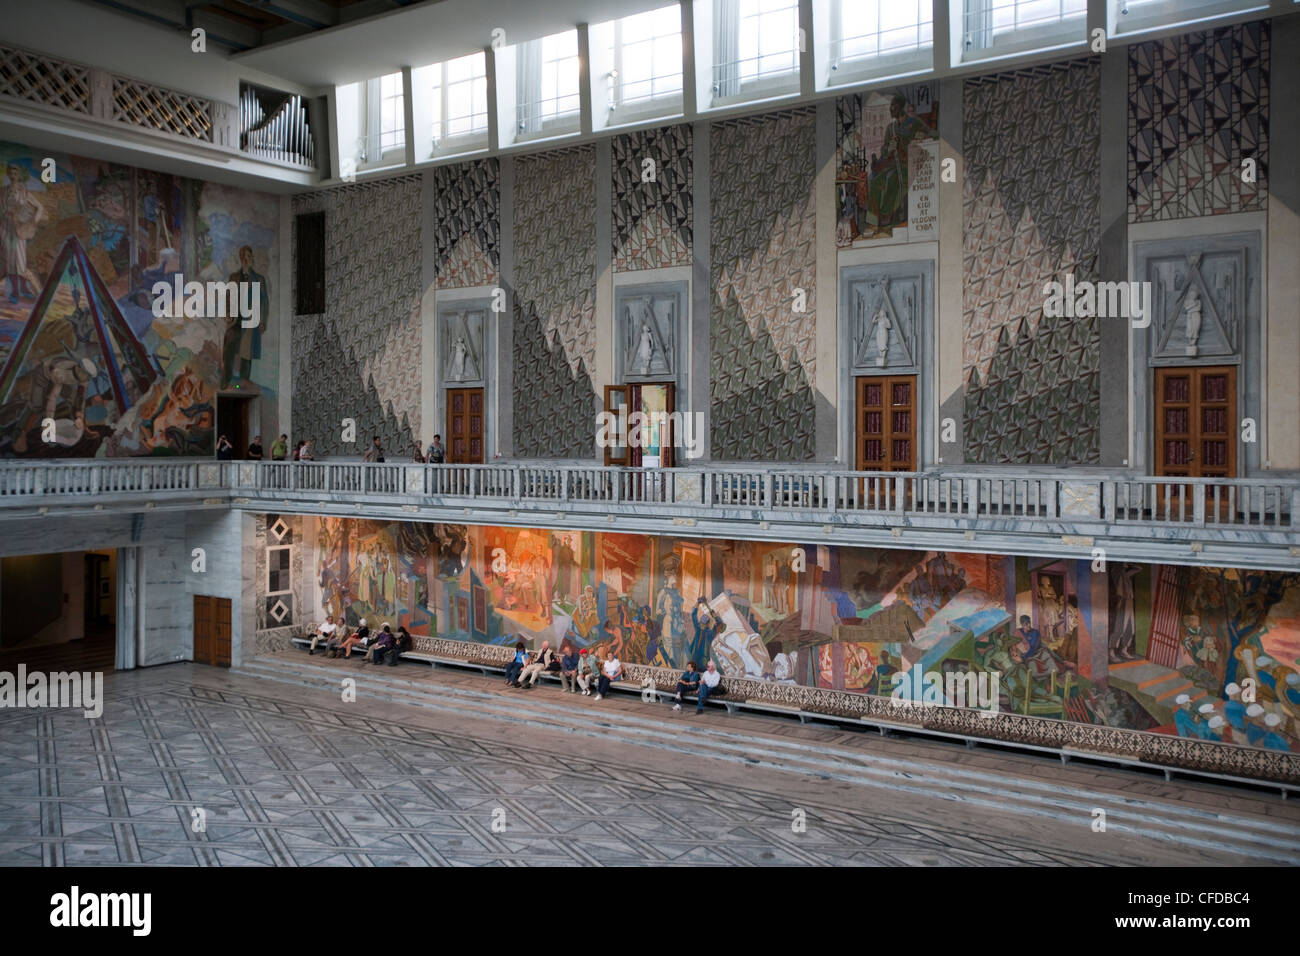 Interior view of Oslo Radhus, city hall with large mural paintings, Oslo, Oslo, Norway Stock Photo